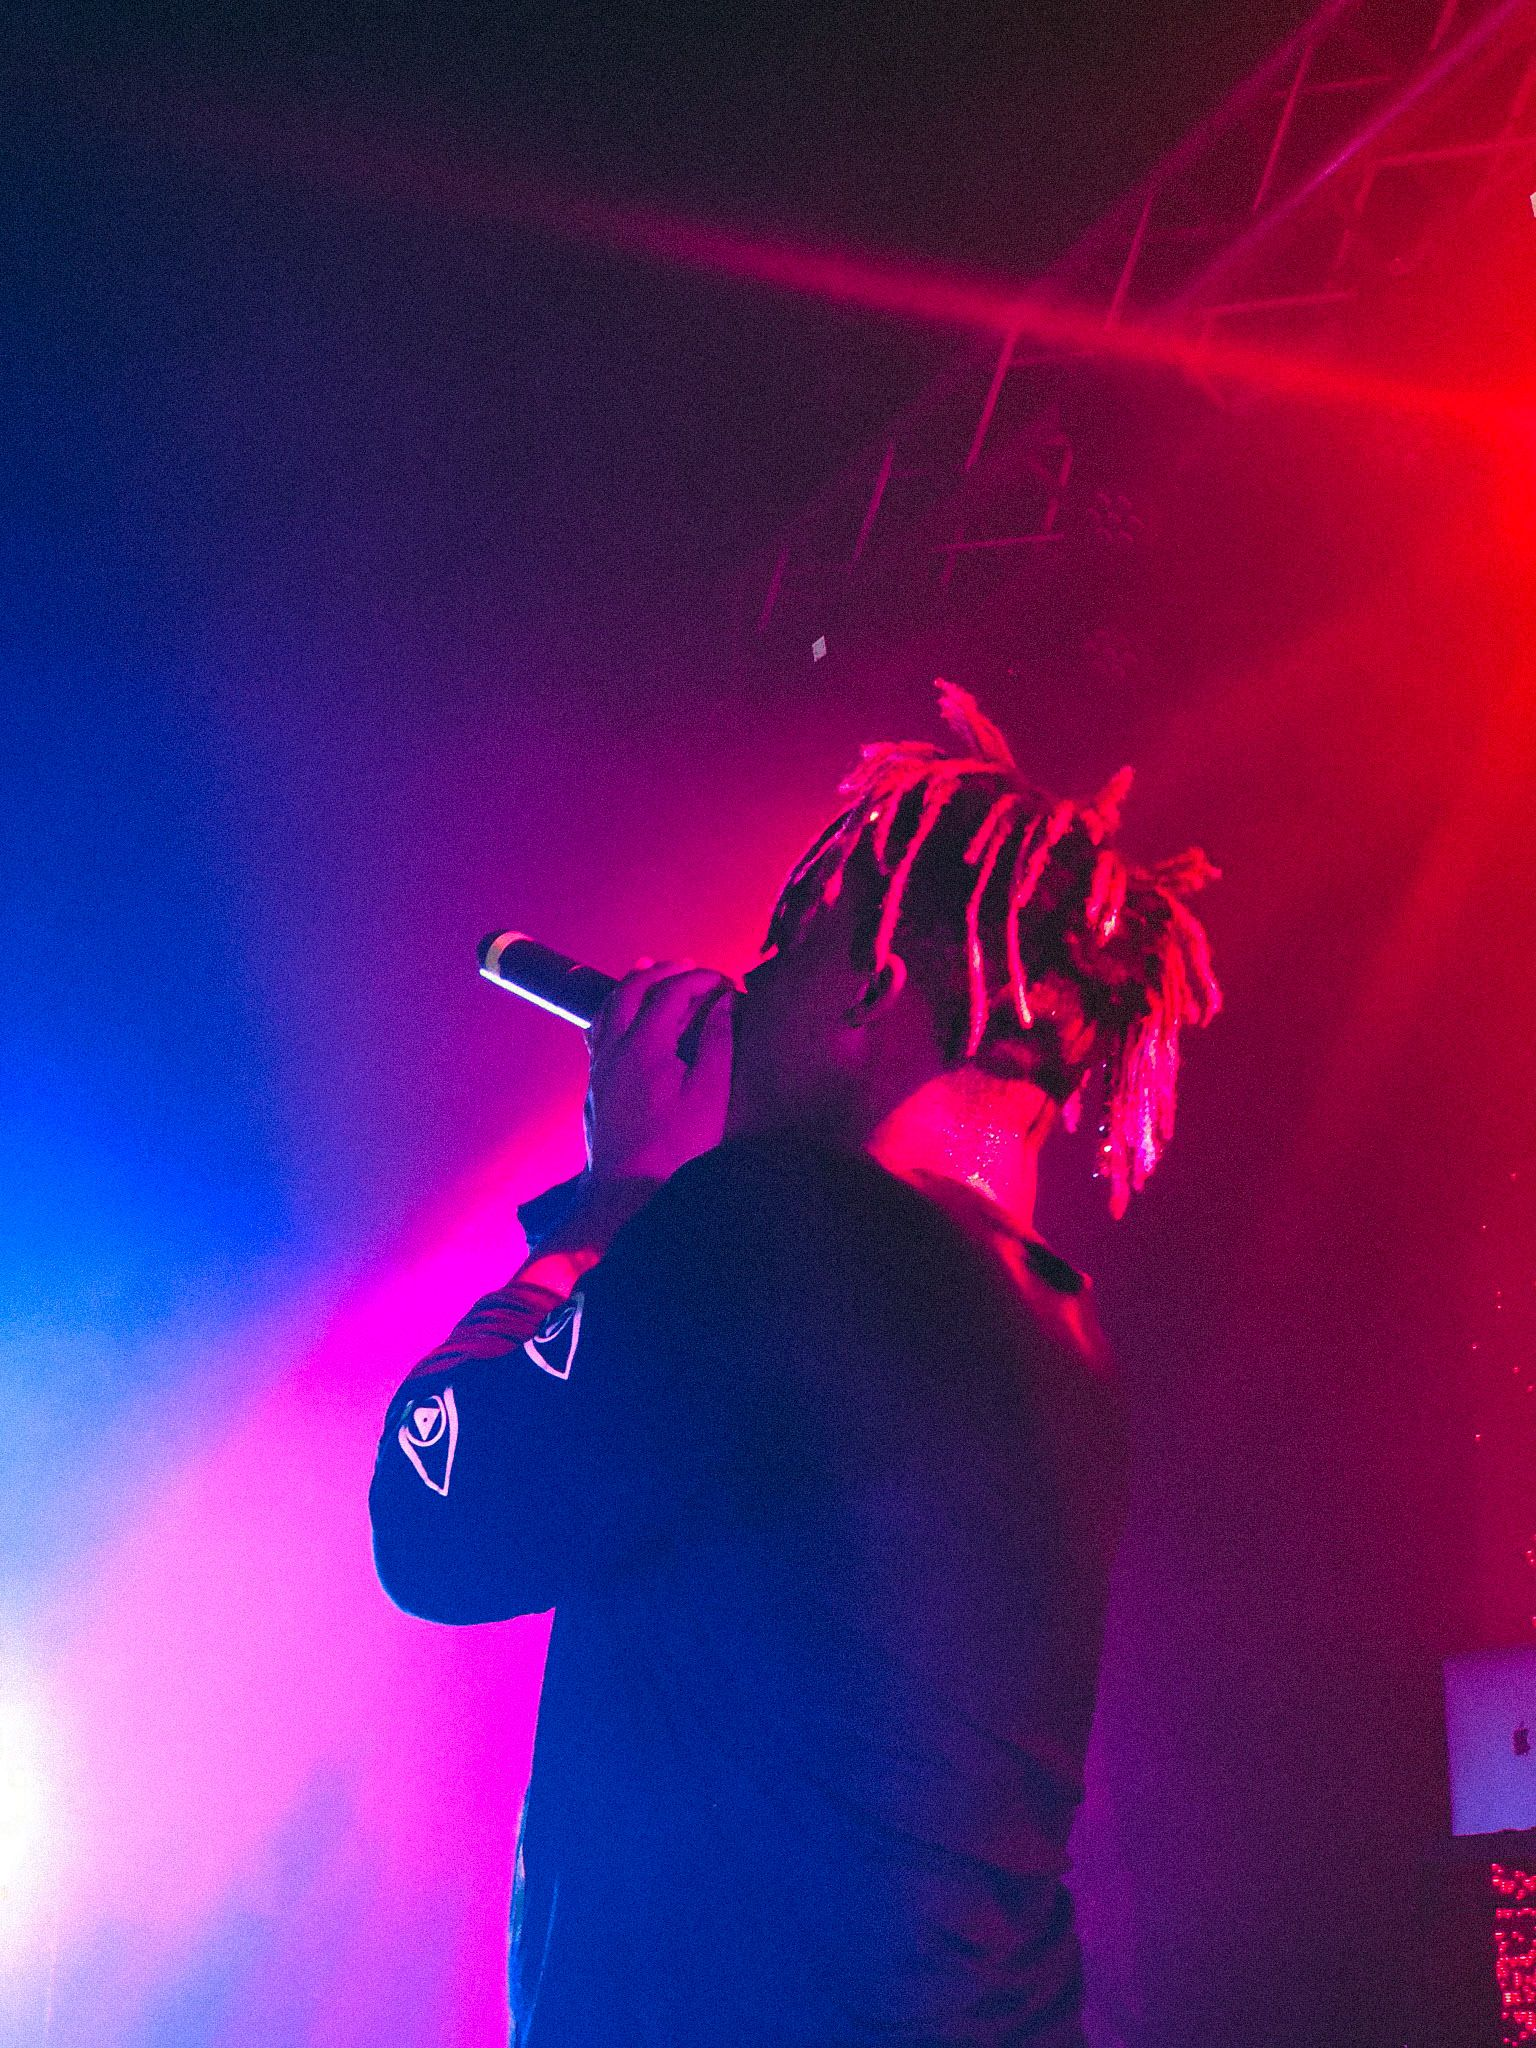 Juice Wrld Wallpaper Posted By Zoey Anderson